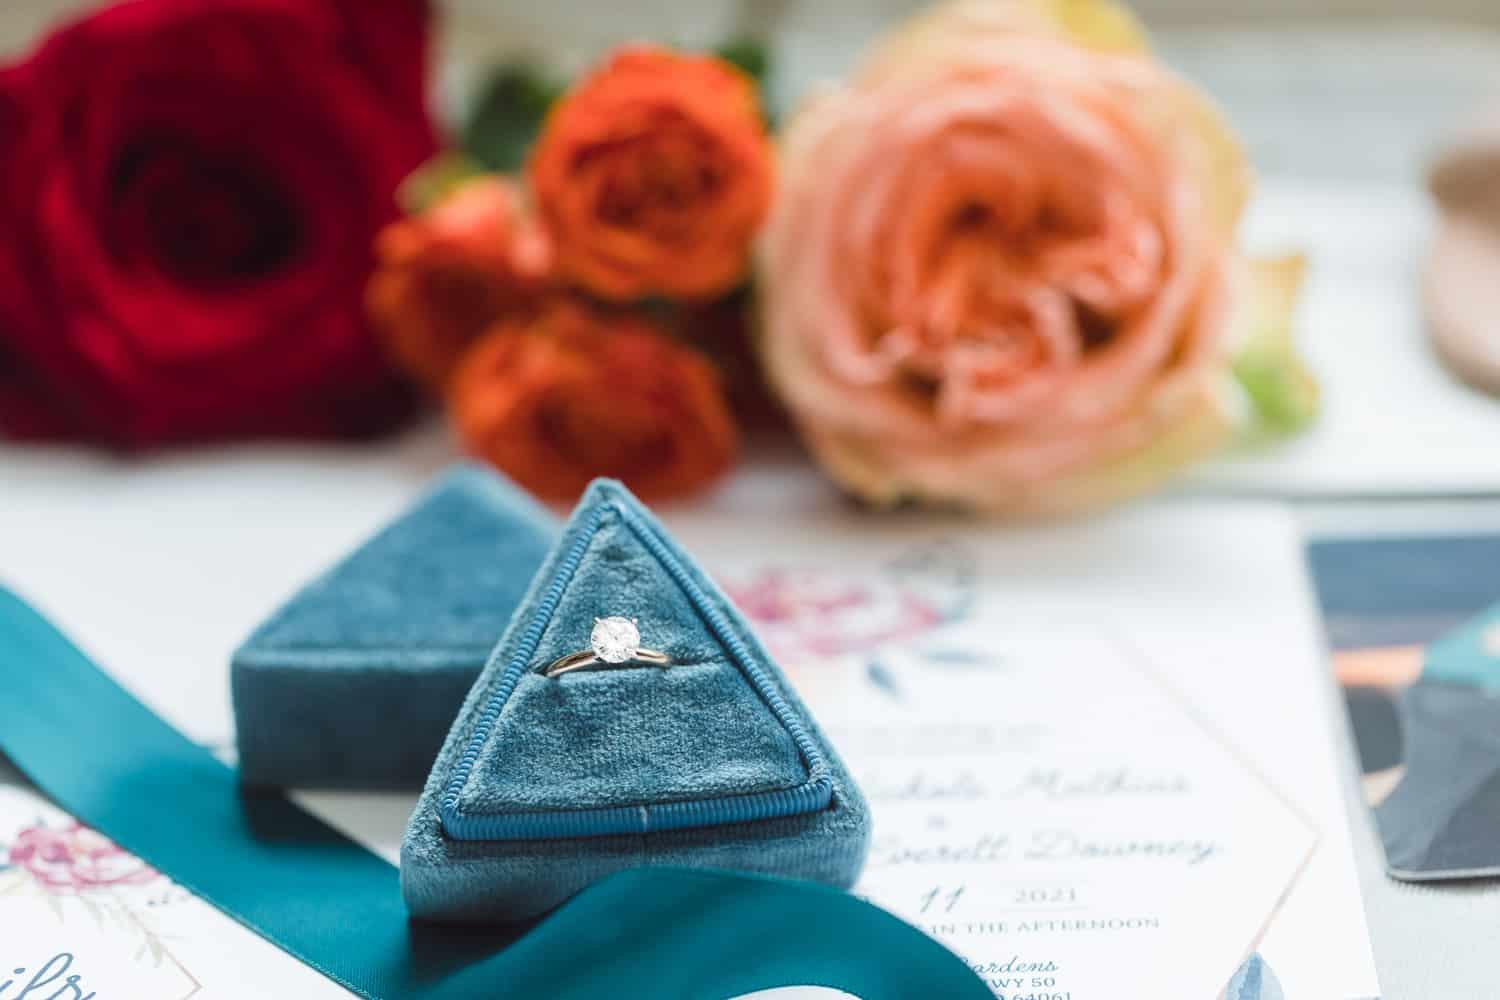 Powell Gardens wedding details with bright colored florals and teal ring box